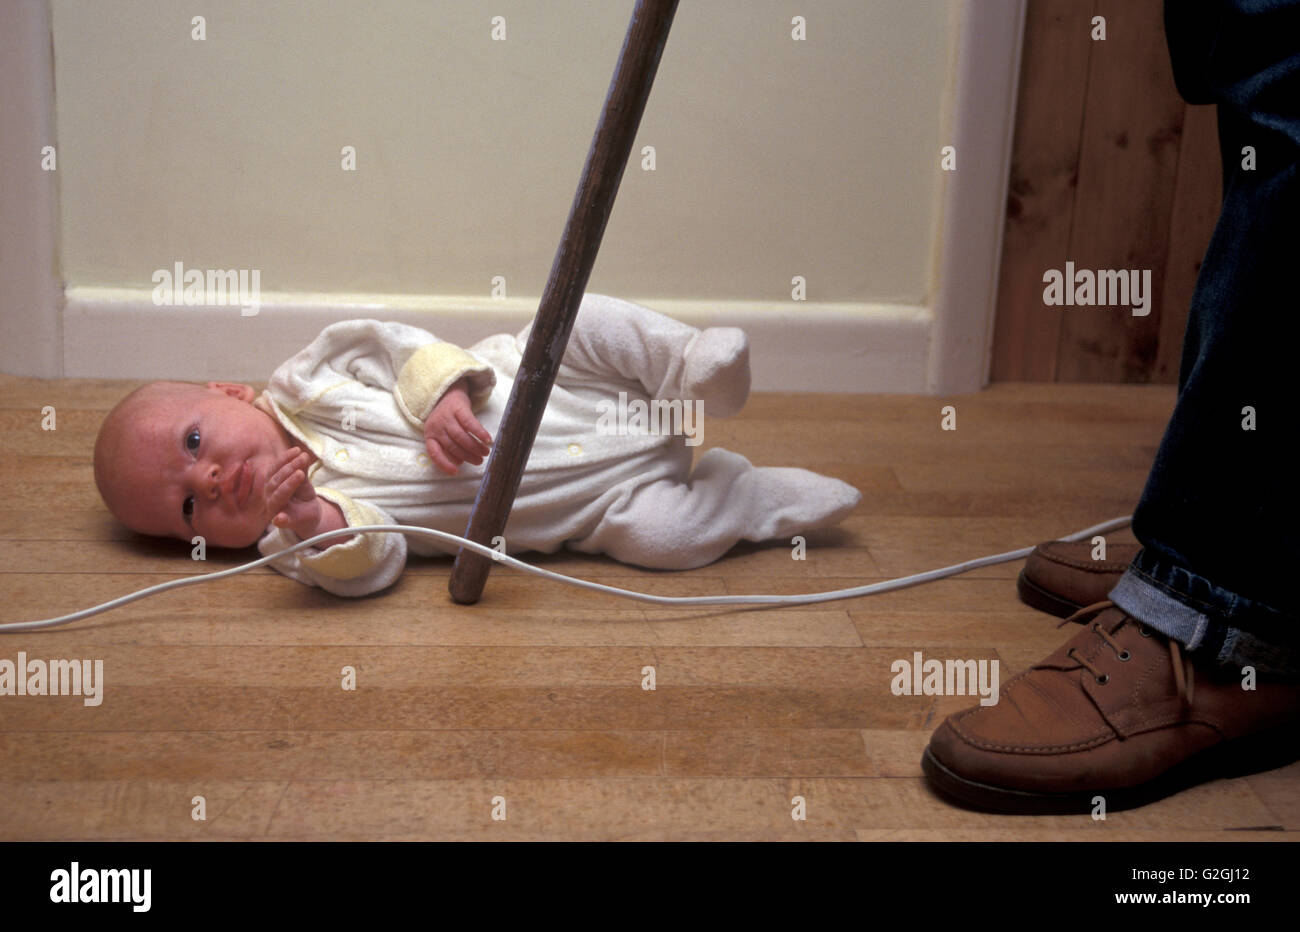 first aid for baby following electric shock - Stock Image